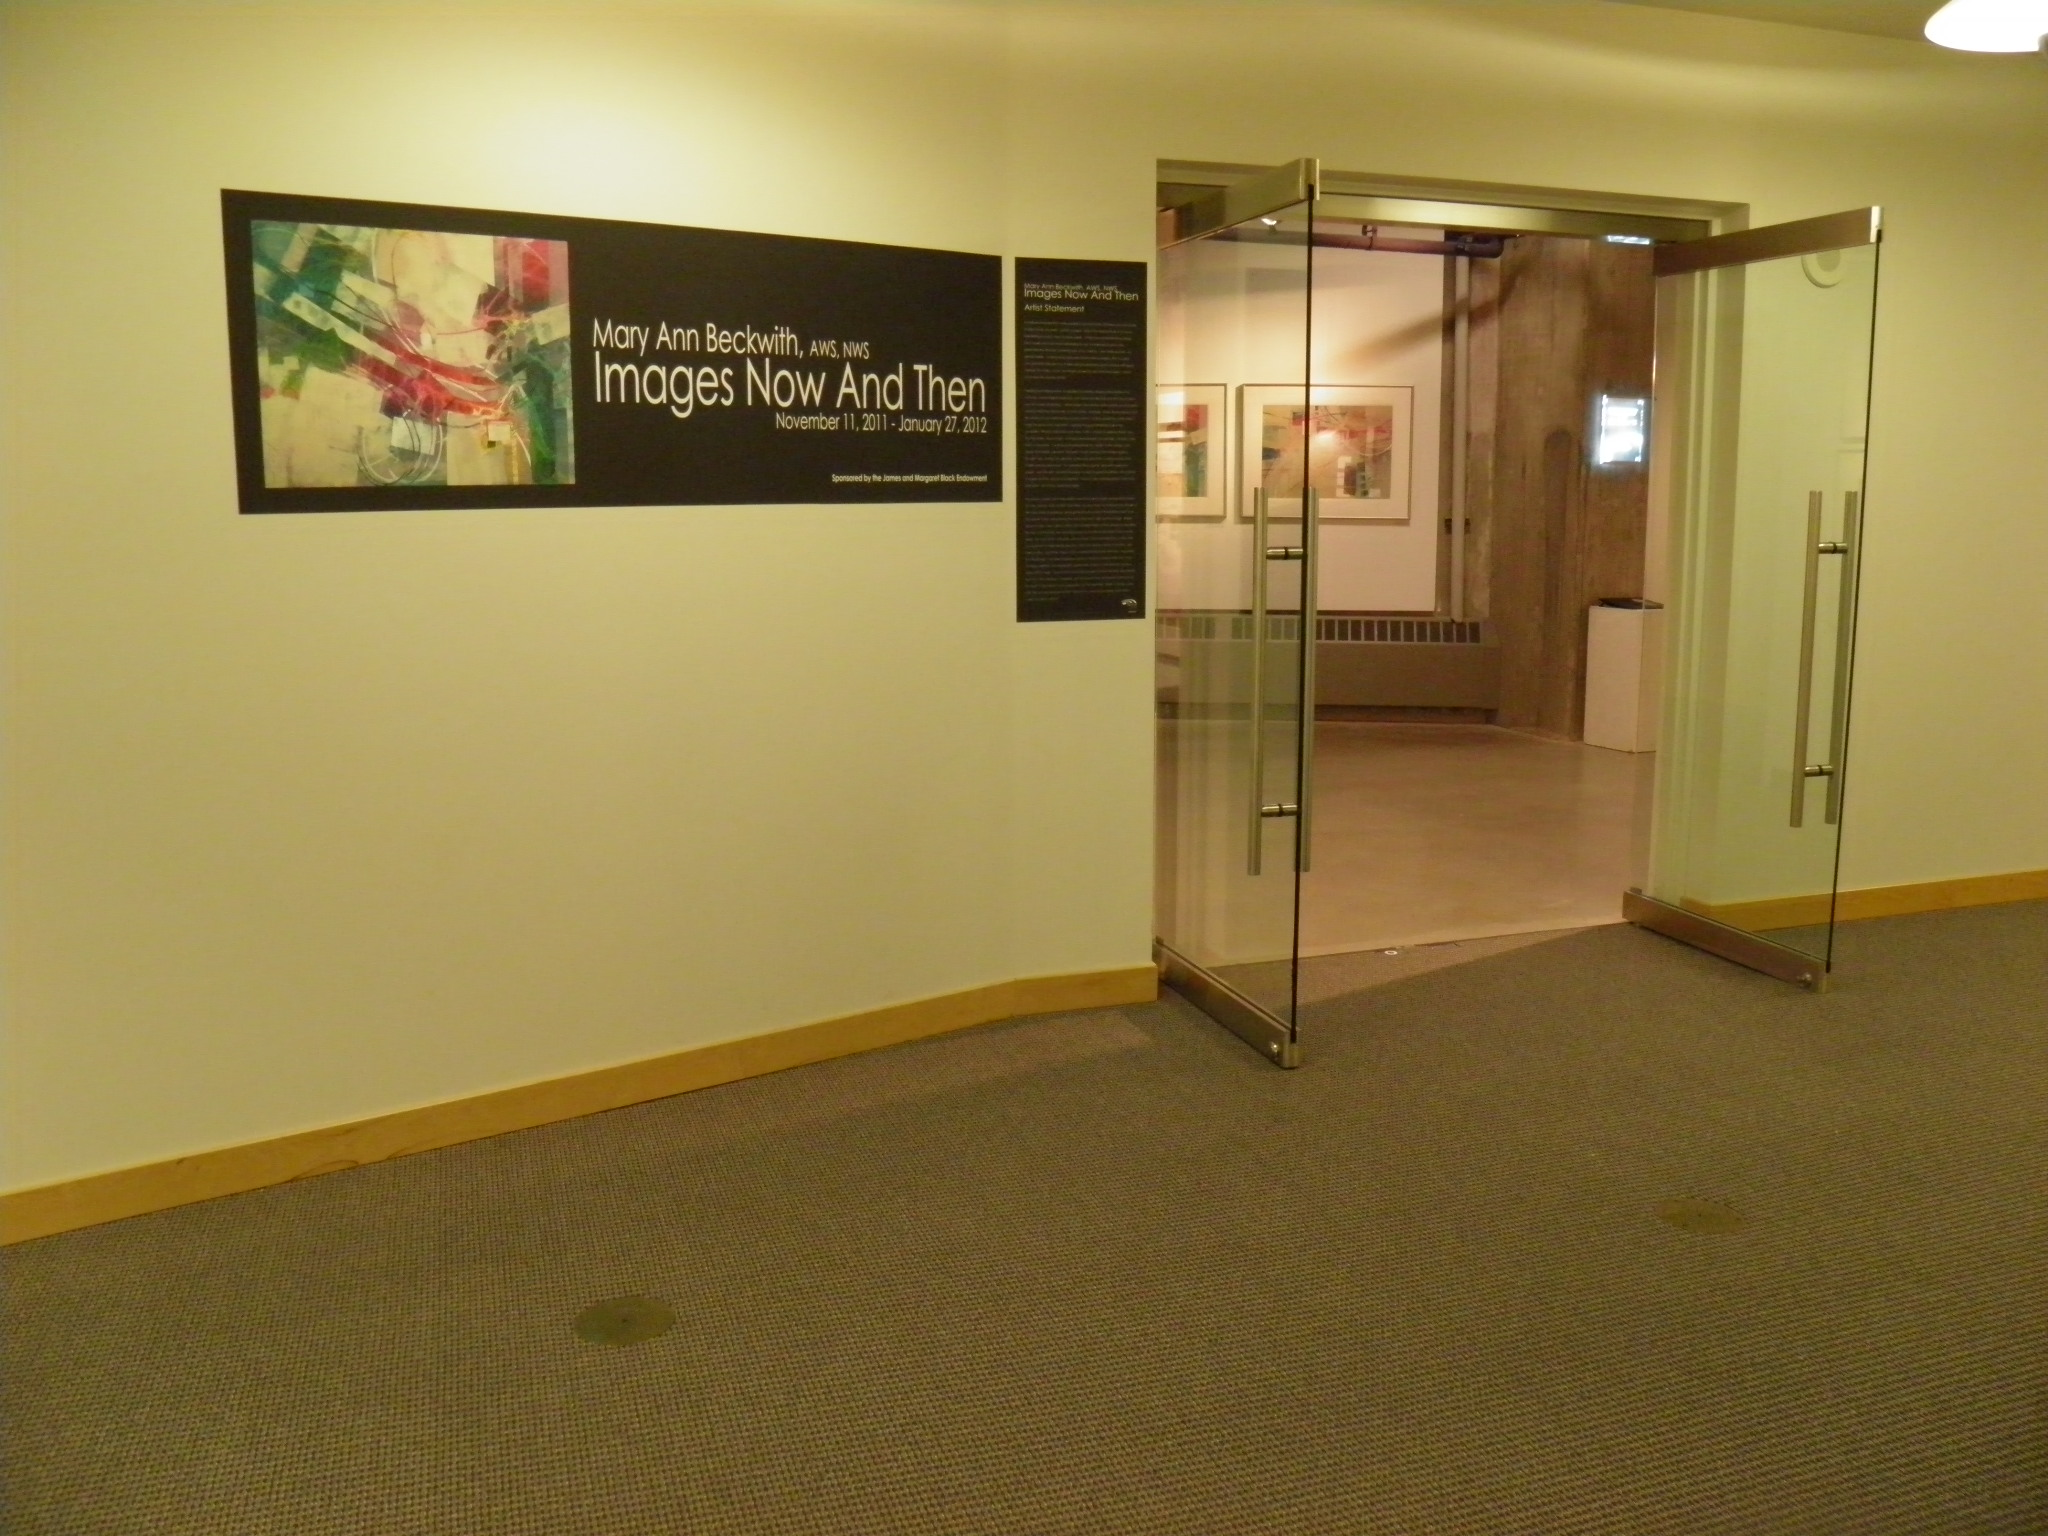 Images Now And Then Exhibit